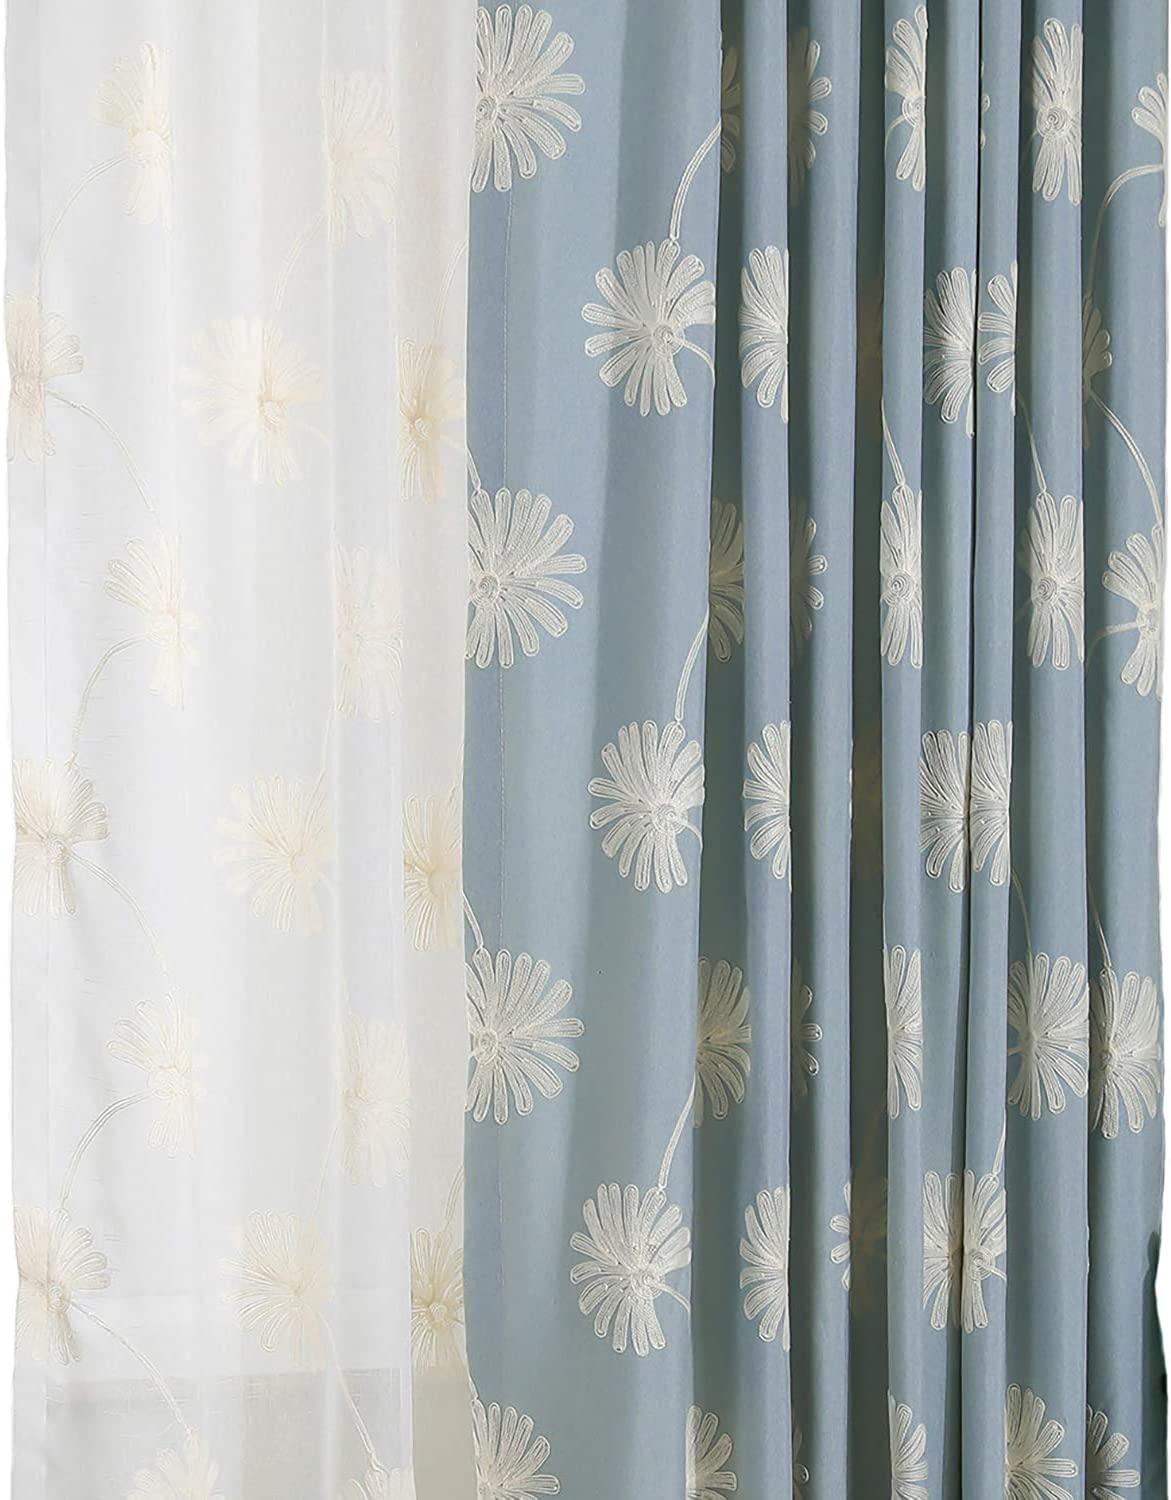 VOGOL(2 Panels Floral Patten Embroidered Elegant Faux Linen Grommet Curtains Thermal Insulated 60% Blackout Heavy Drapes for Bedroom Living Room,Energy Efficient Window Treatment Panels,52 x 84 Inch